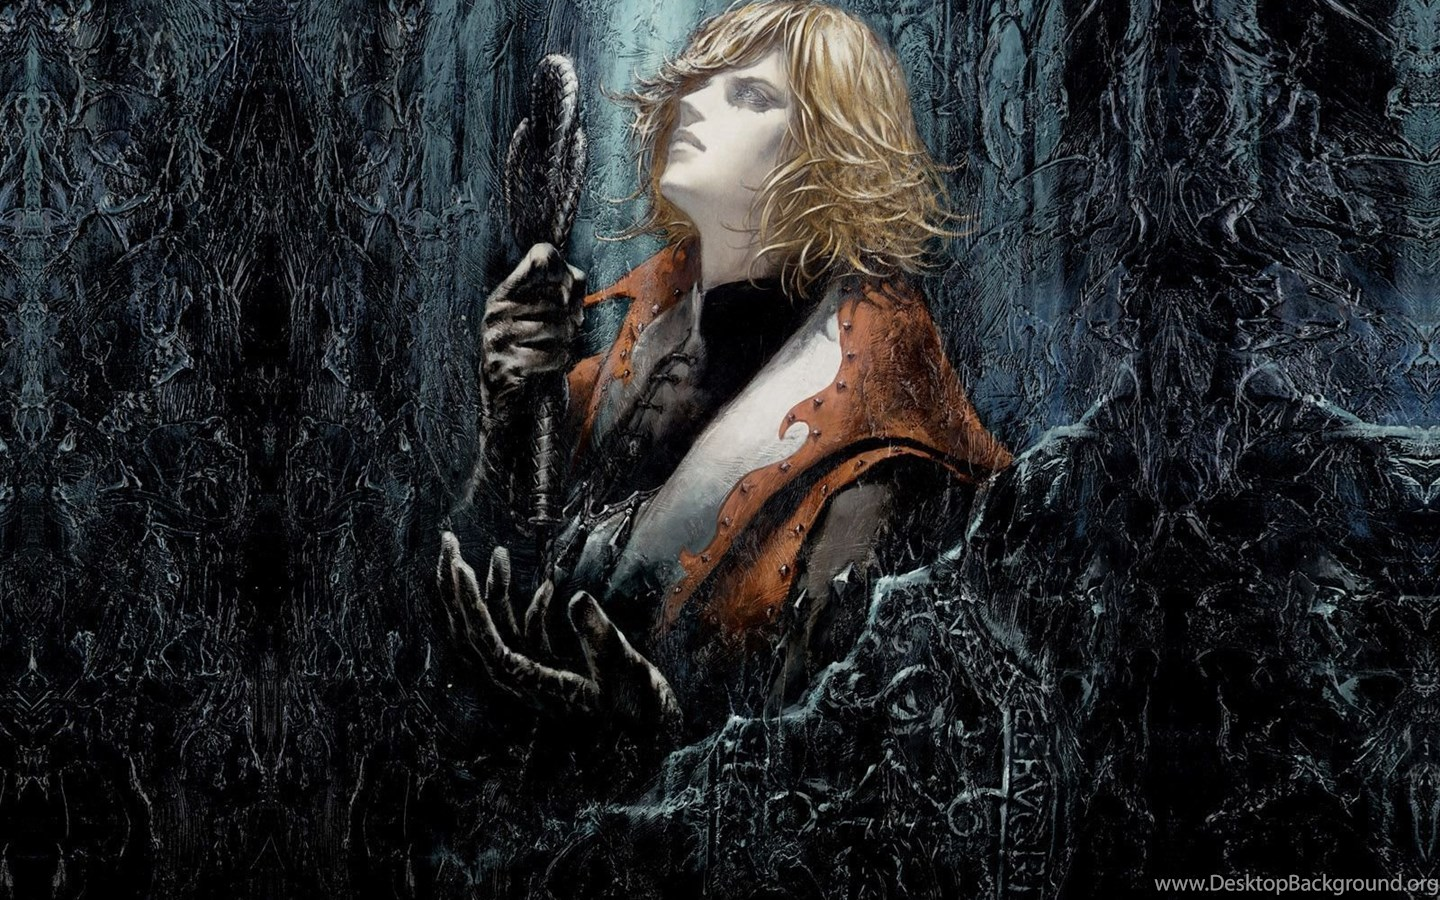 Wallpapers Castlevania Castlevania Lords Of Shadow Games Image